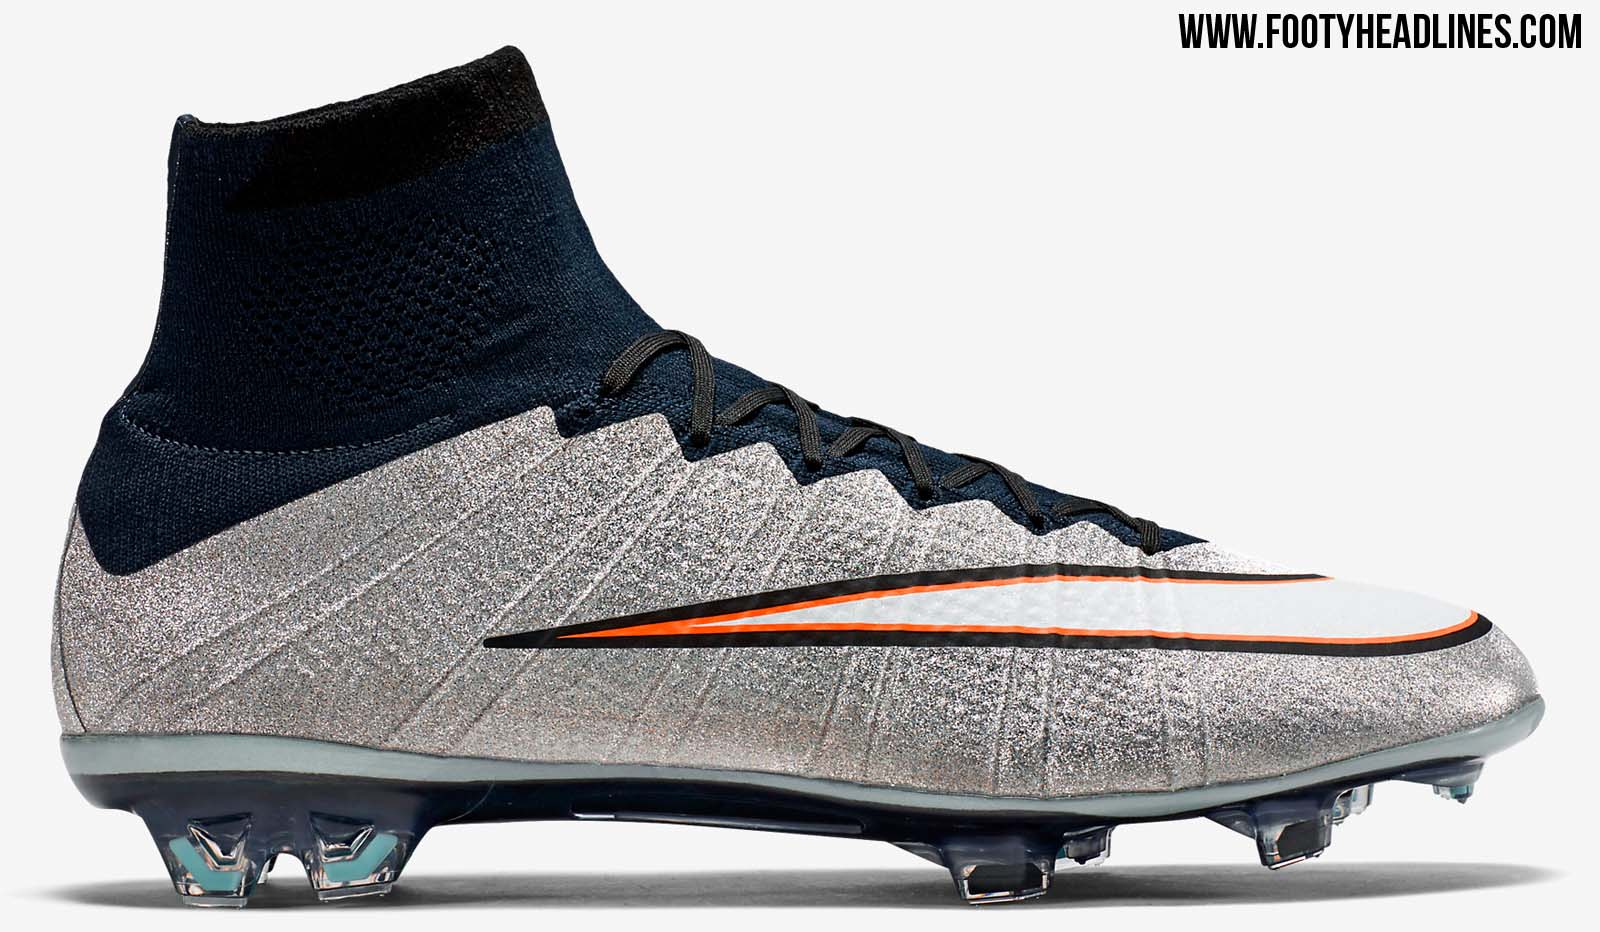 Nike Mercurial Superfly CR7 Silverware - Metallic Silver / White / Hyper  Turquoise / Black / Orange